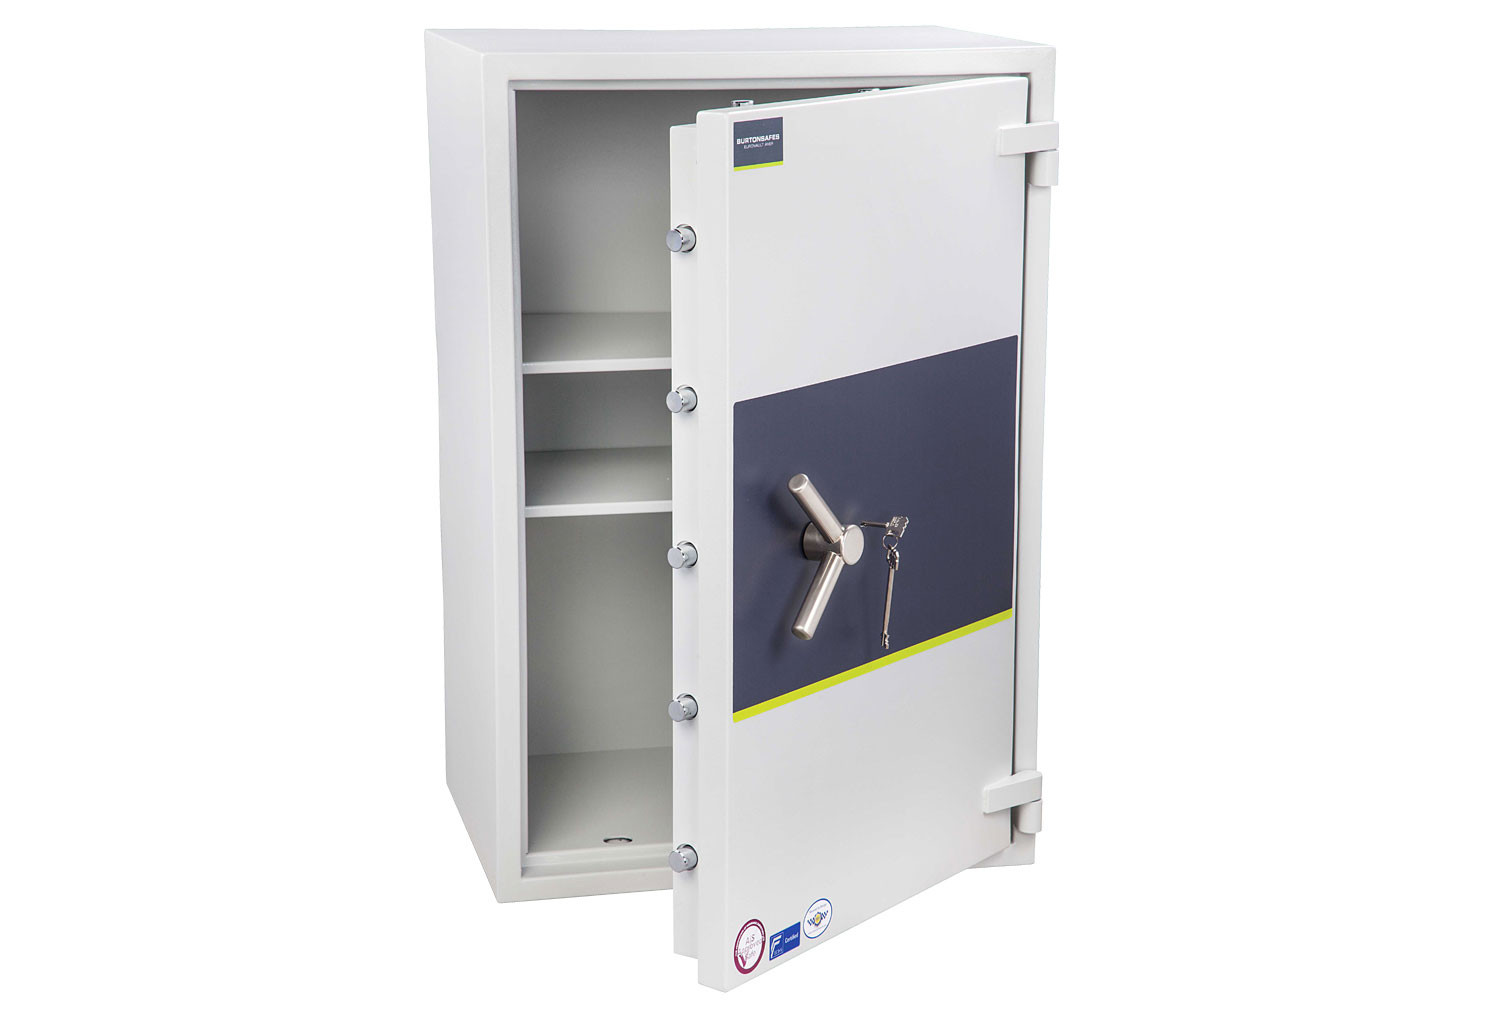 Burton Eurovault Aver Grade 2 Size 5 Safe With Key Lock (202ltrs)